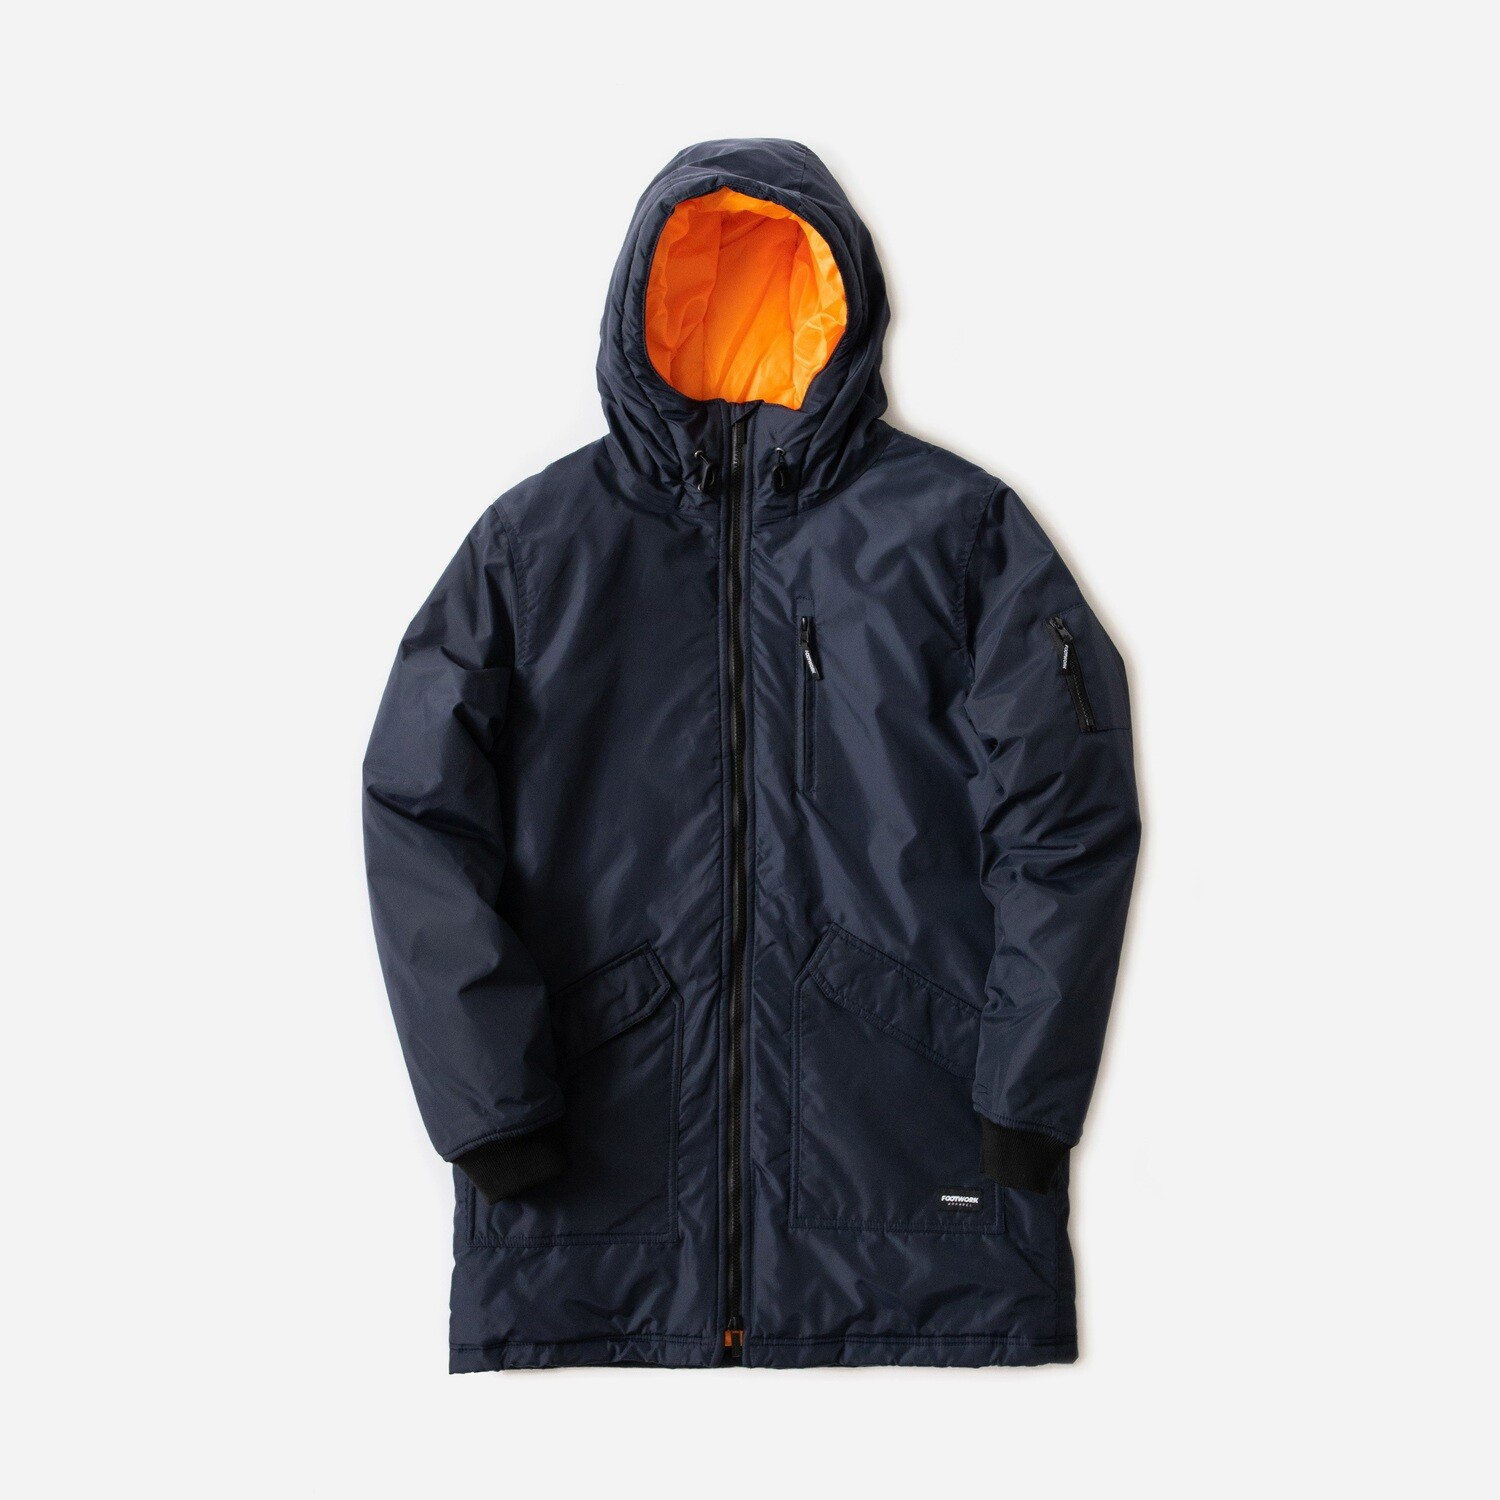 Парка зимняя Footwork Dealer Dark Navy